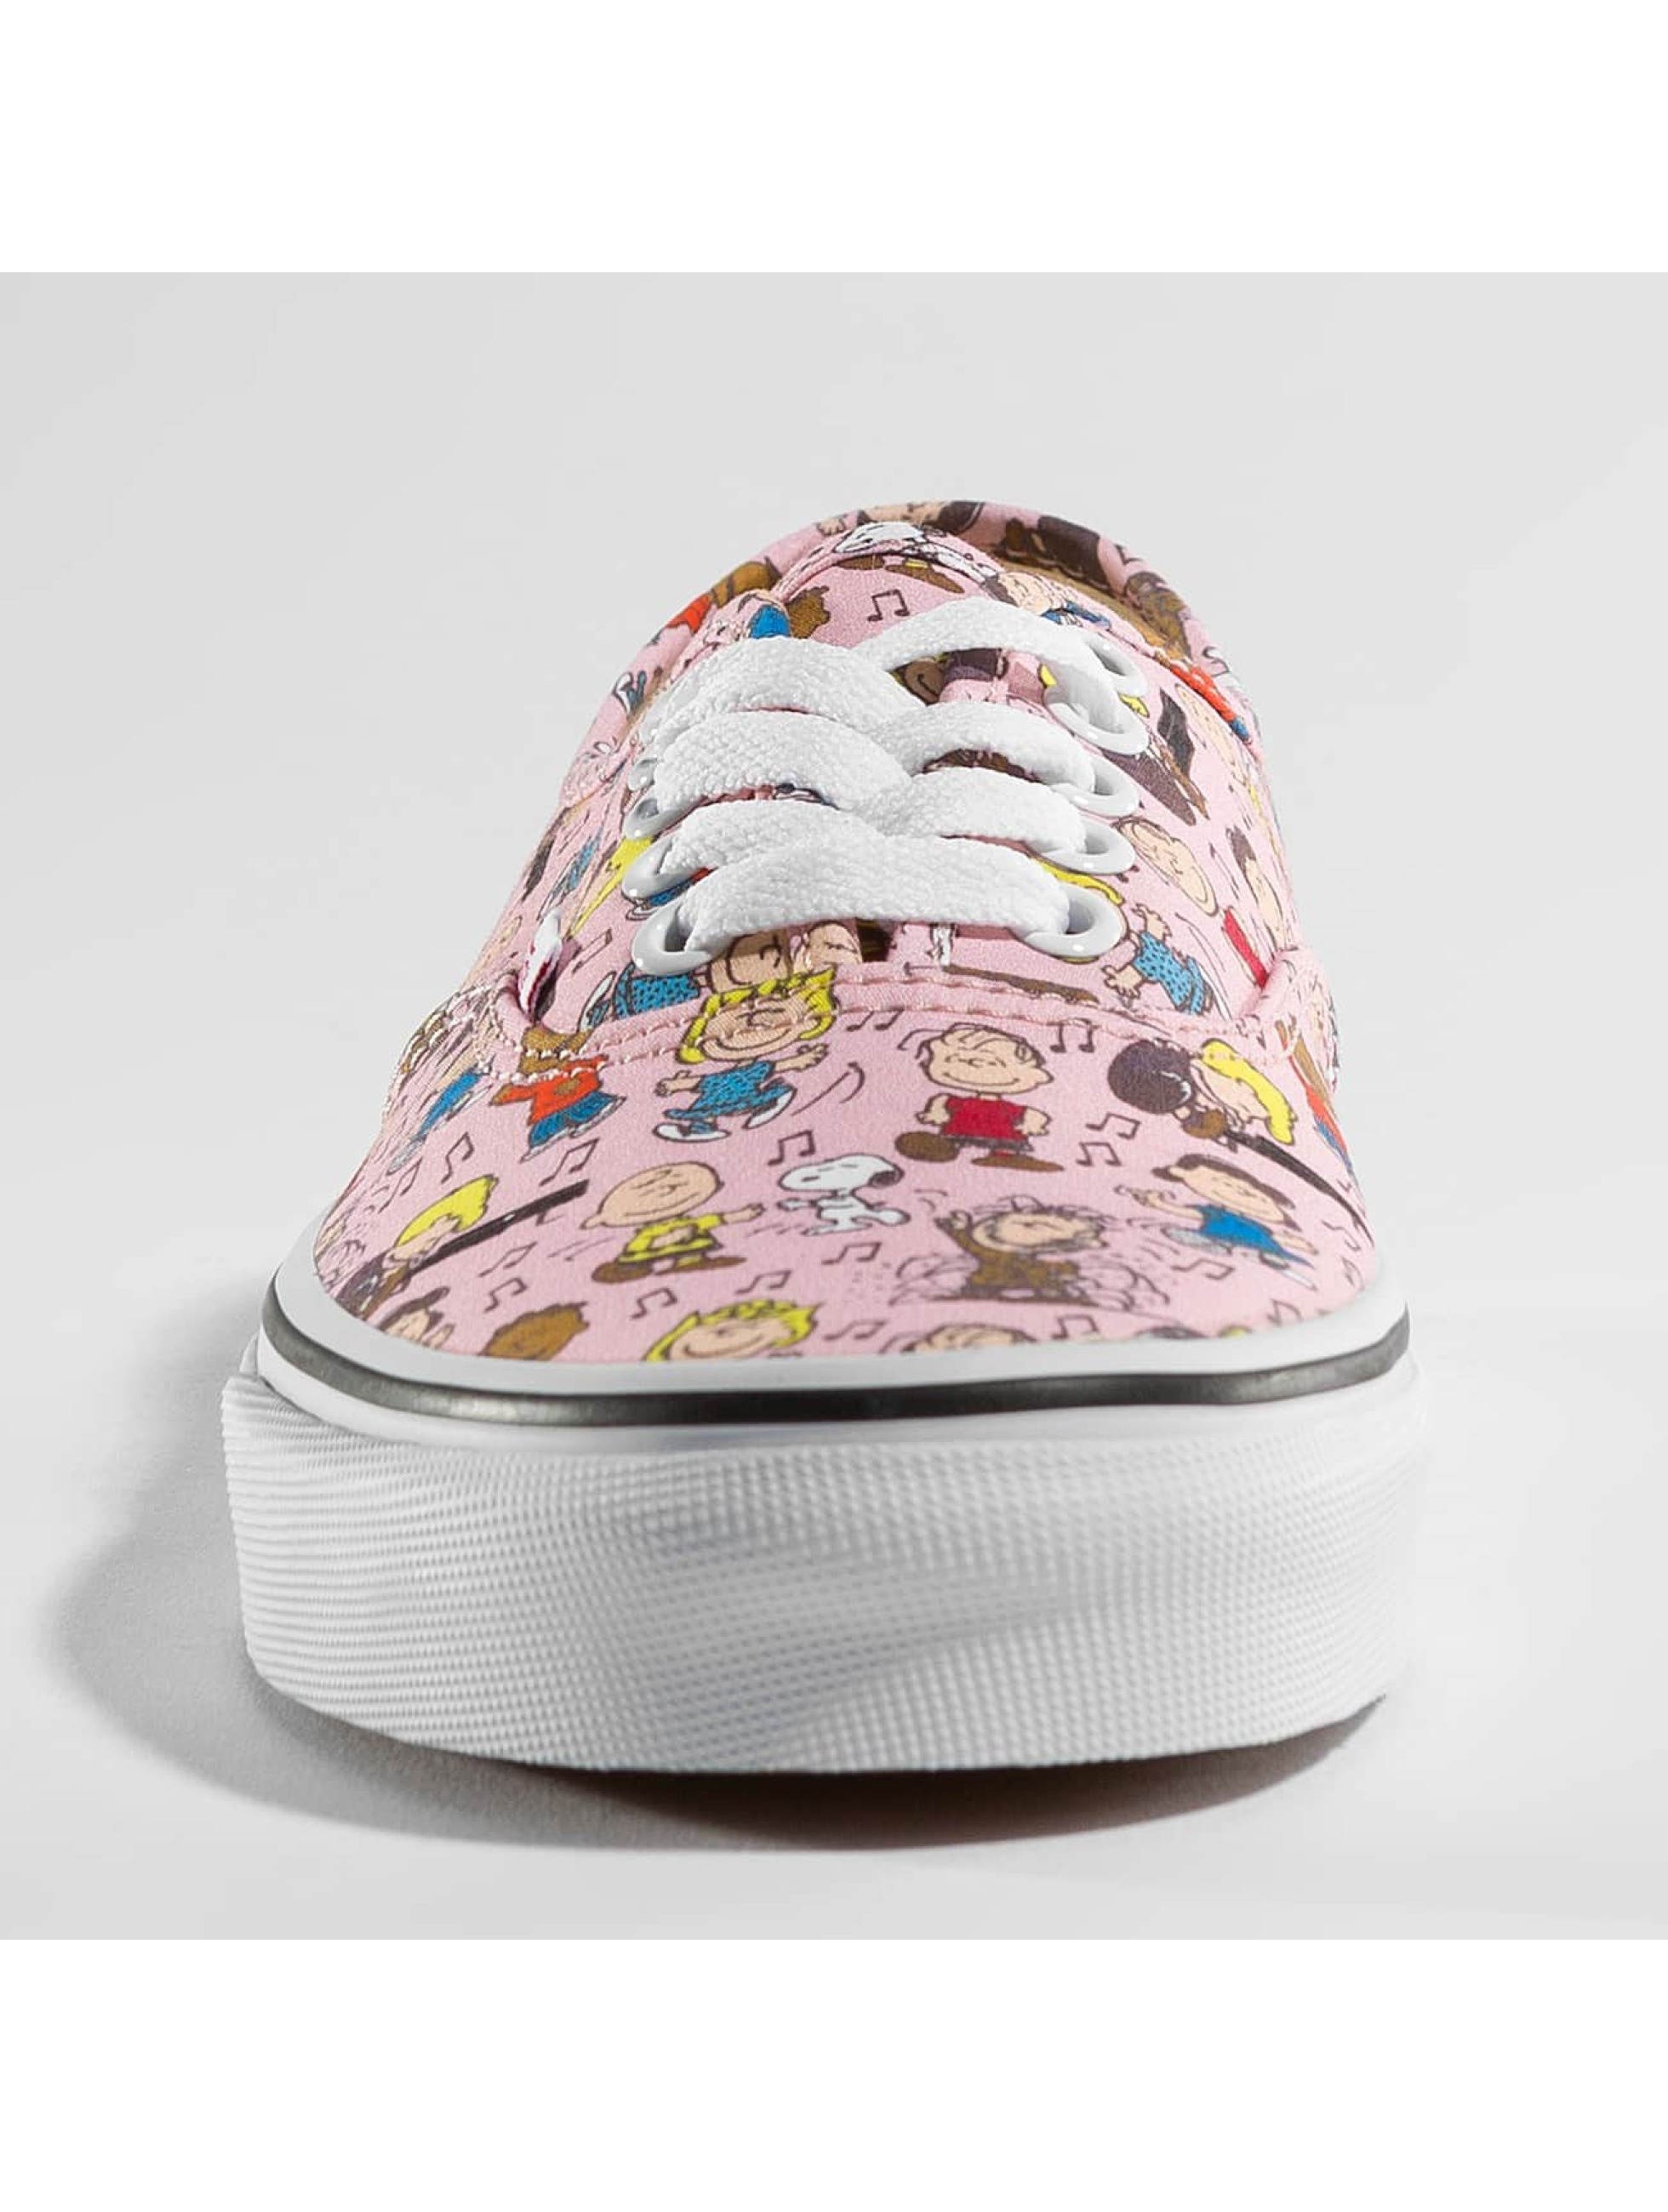 Vans Сникеры Peanuts Authentic цветной